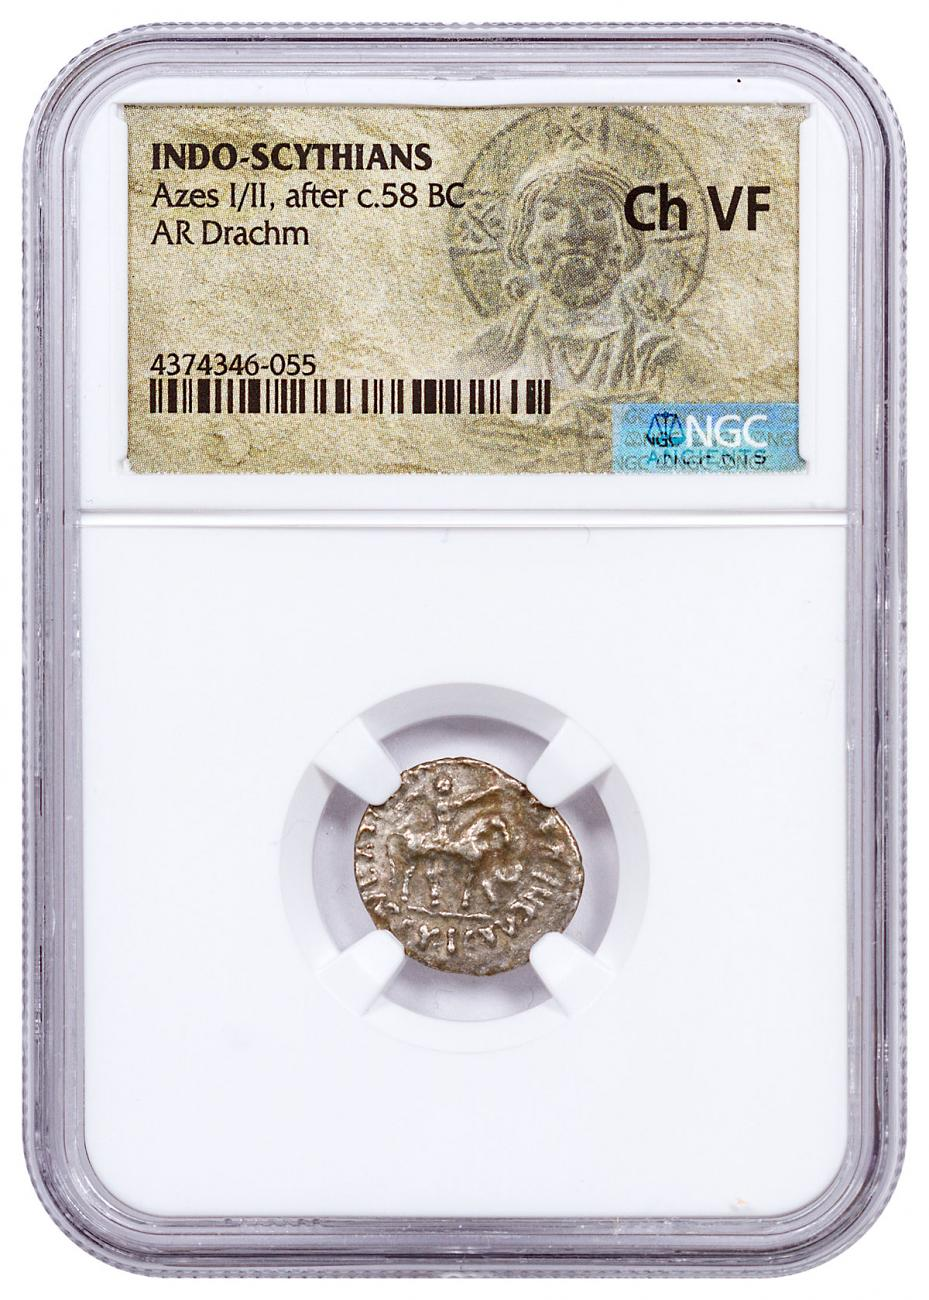 After c. 58 BC Indo-Scythians Azes I/II AR Drachm NGC Ch VF Christ Portrait Label